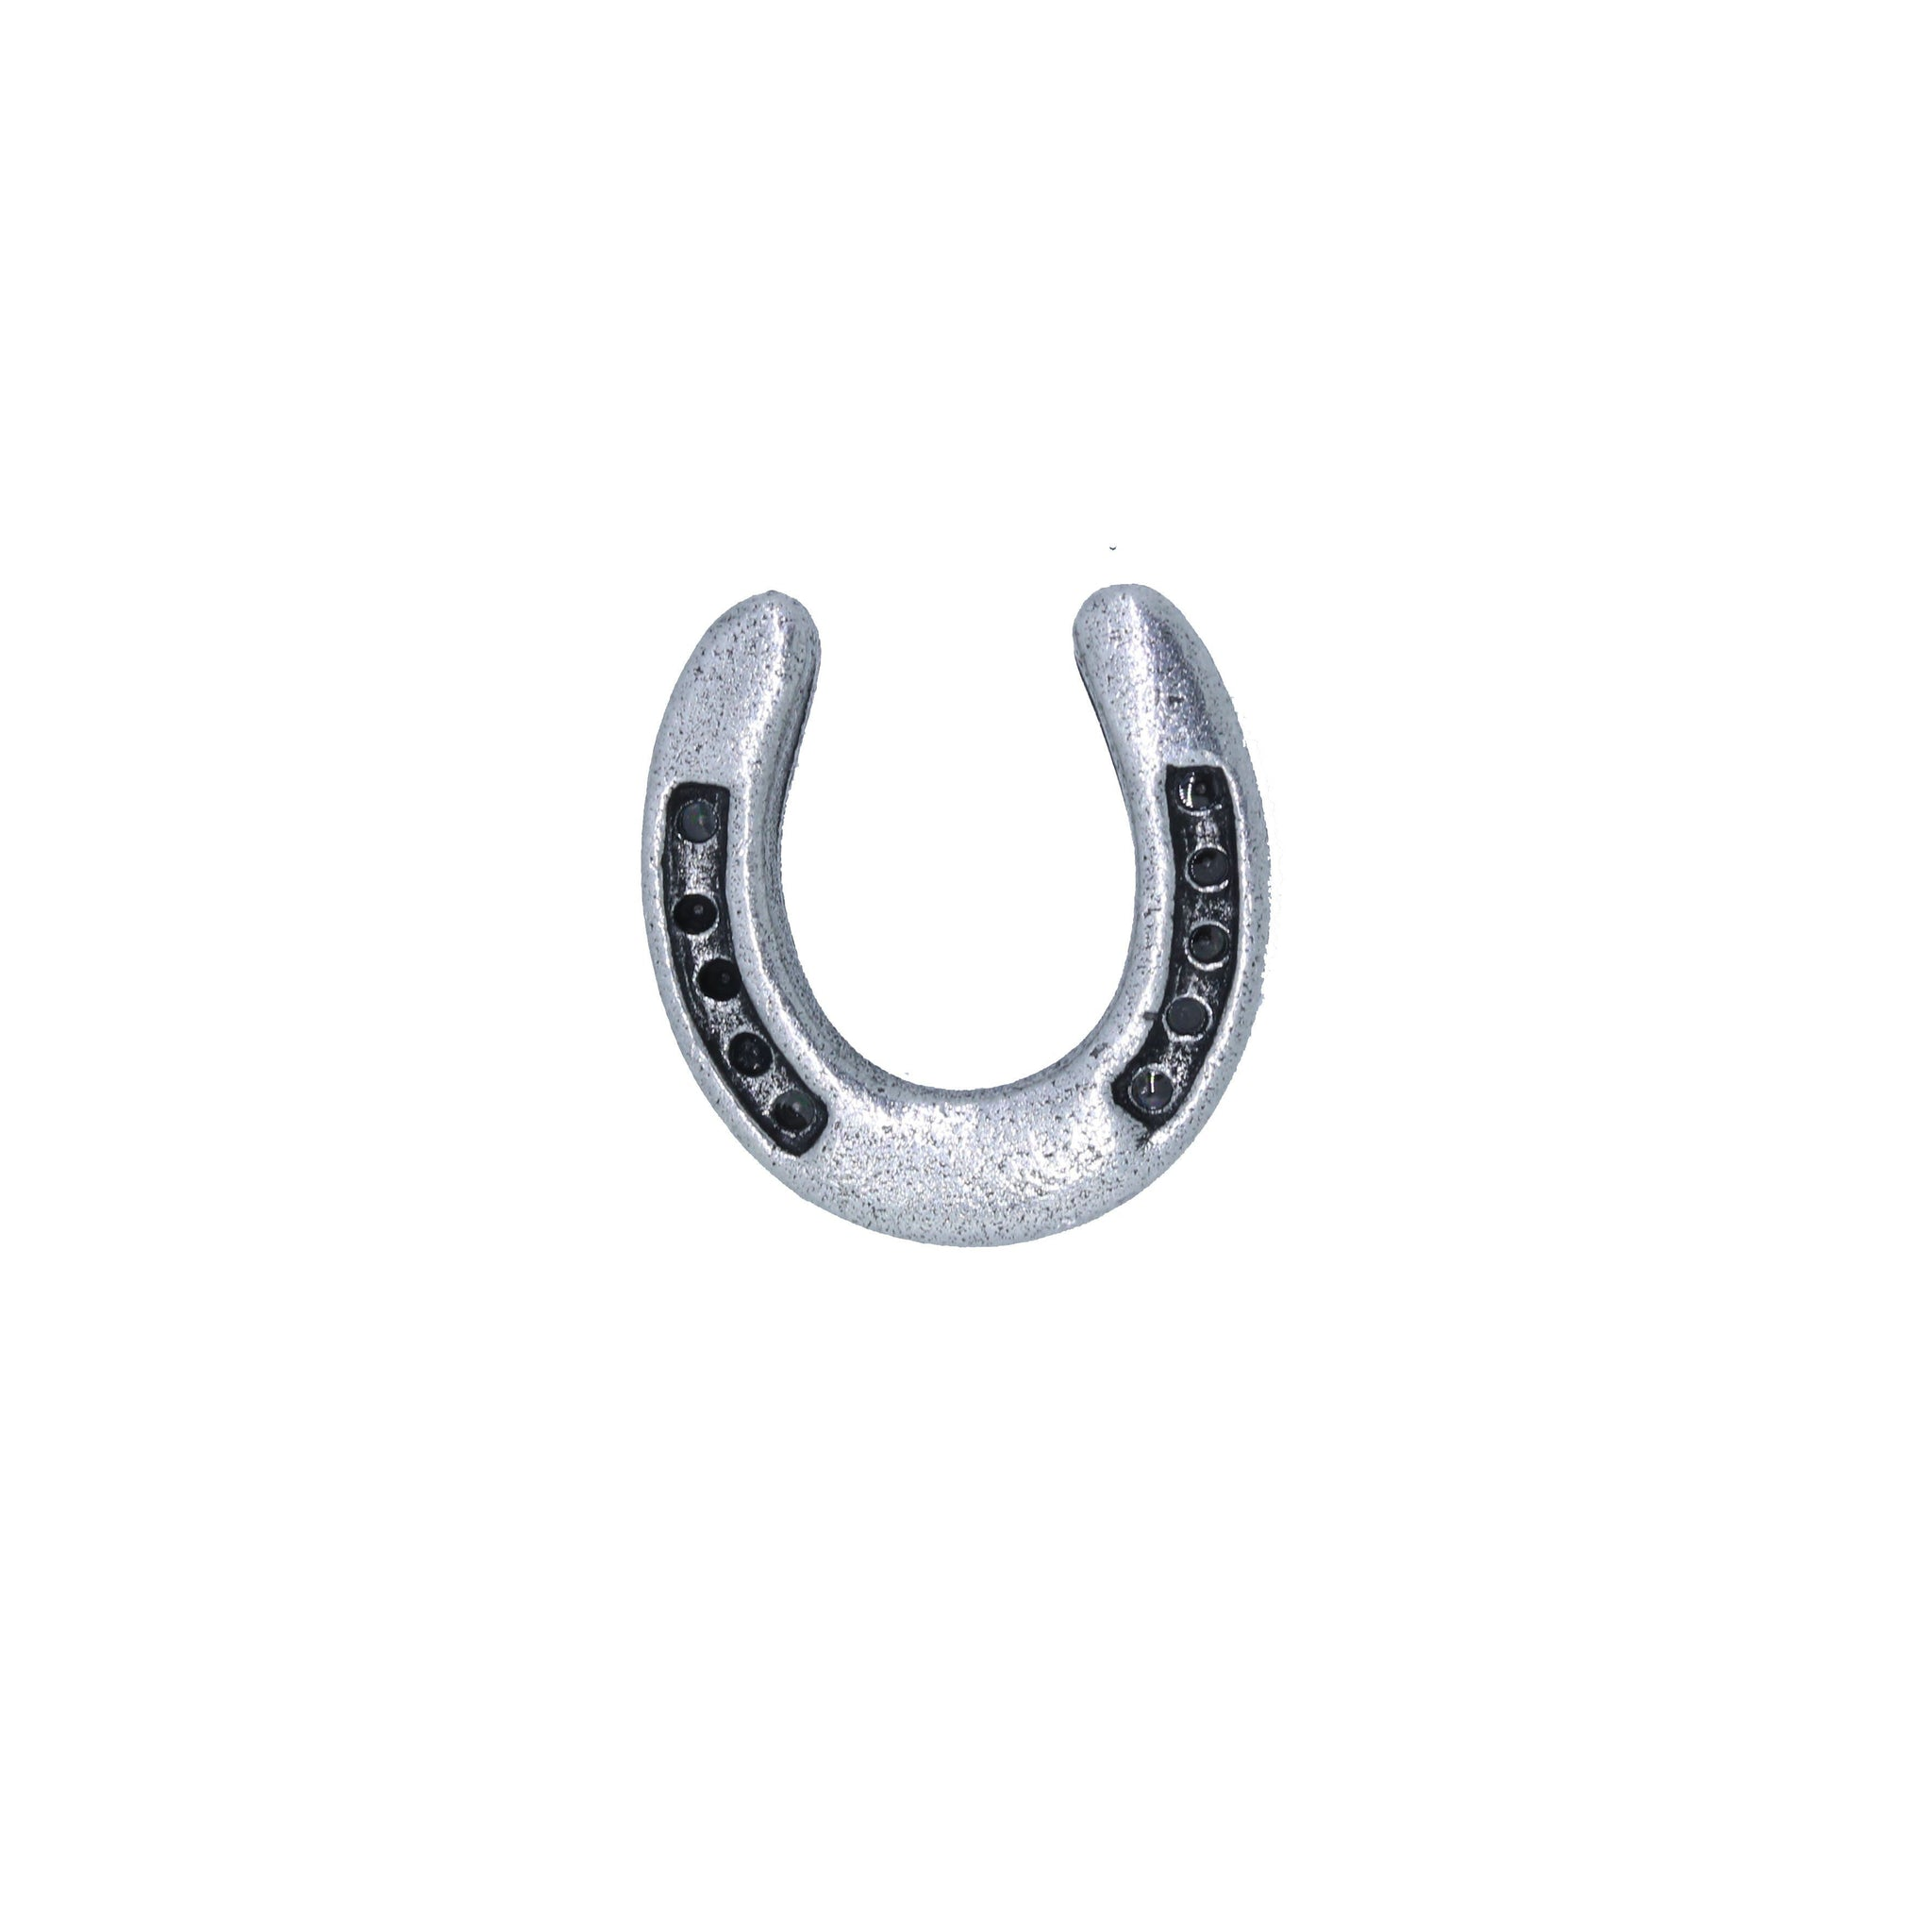 Horseshoe Lapel Pin